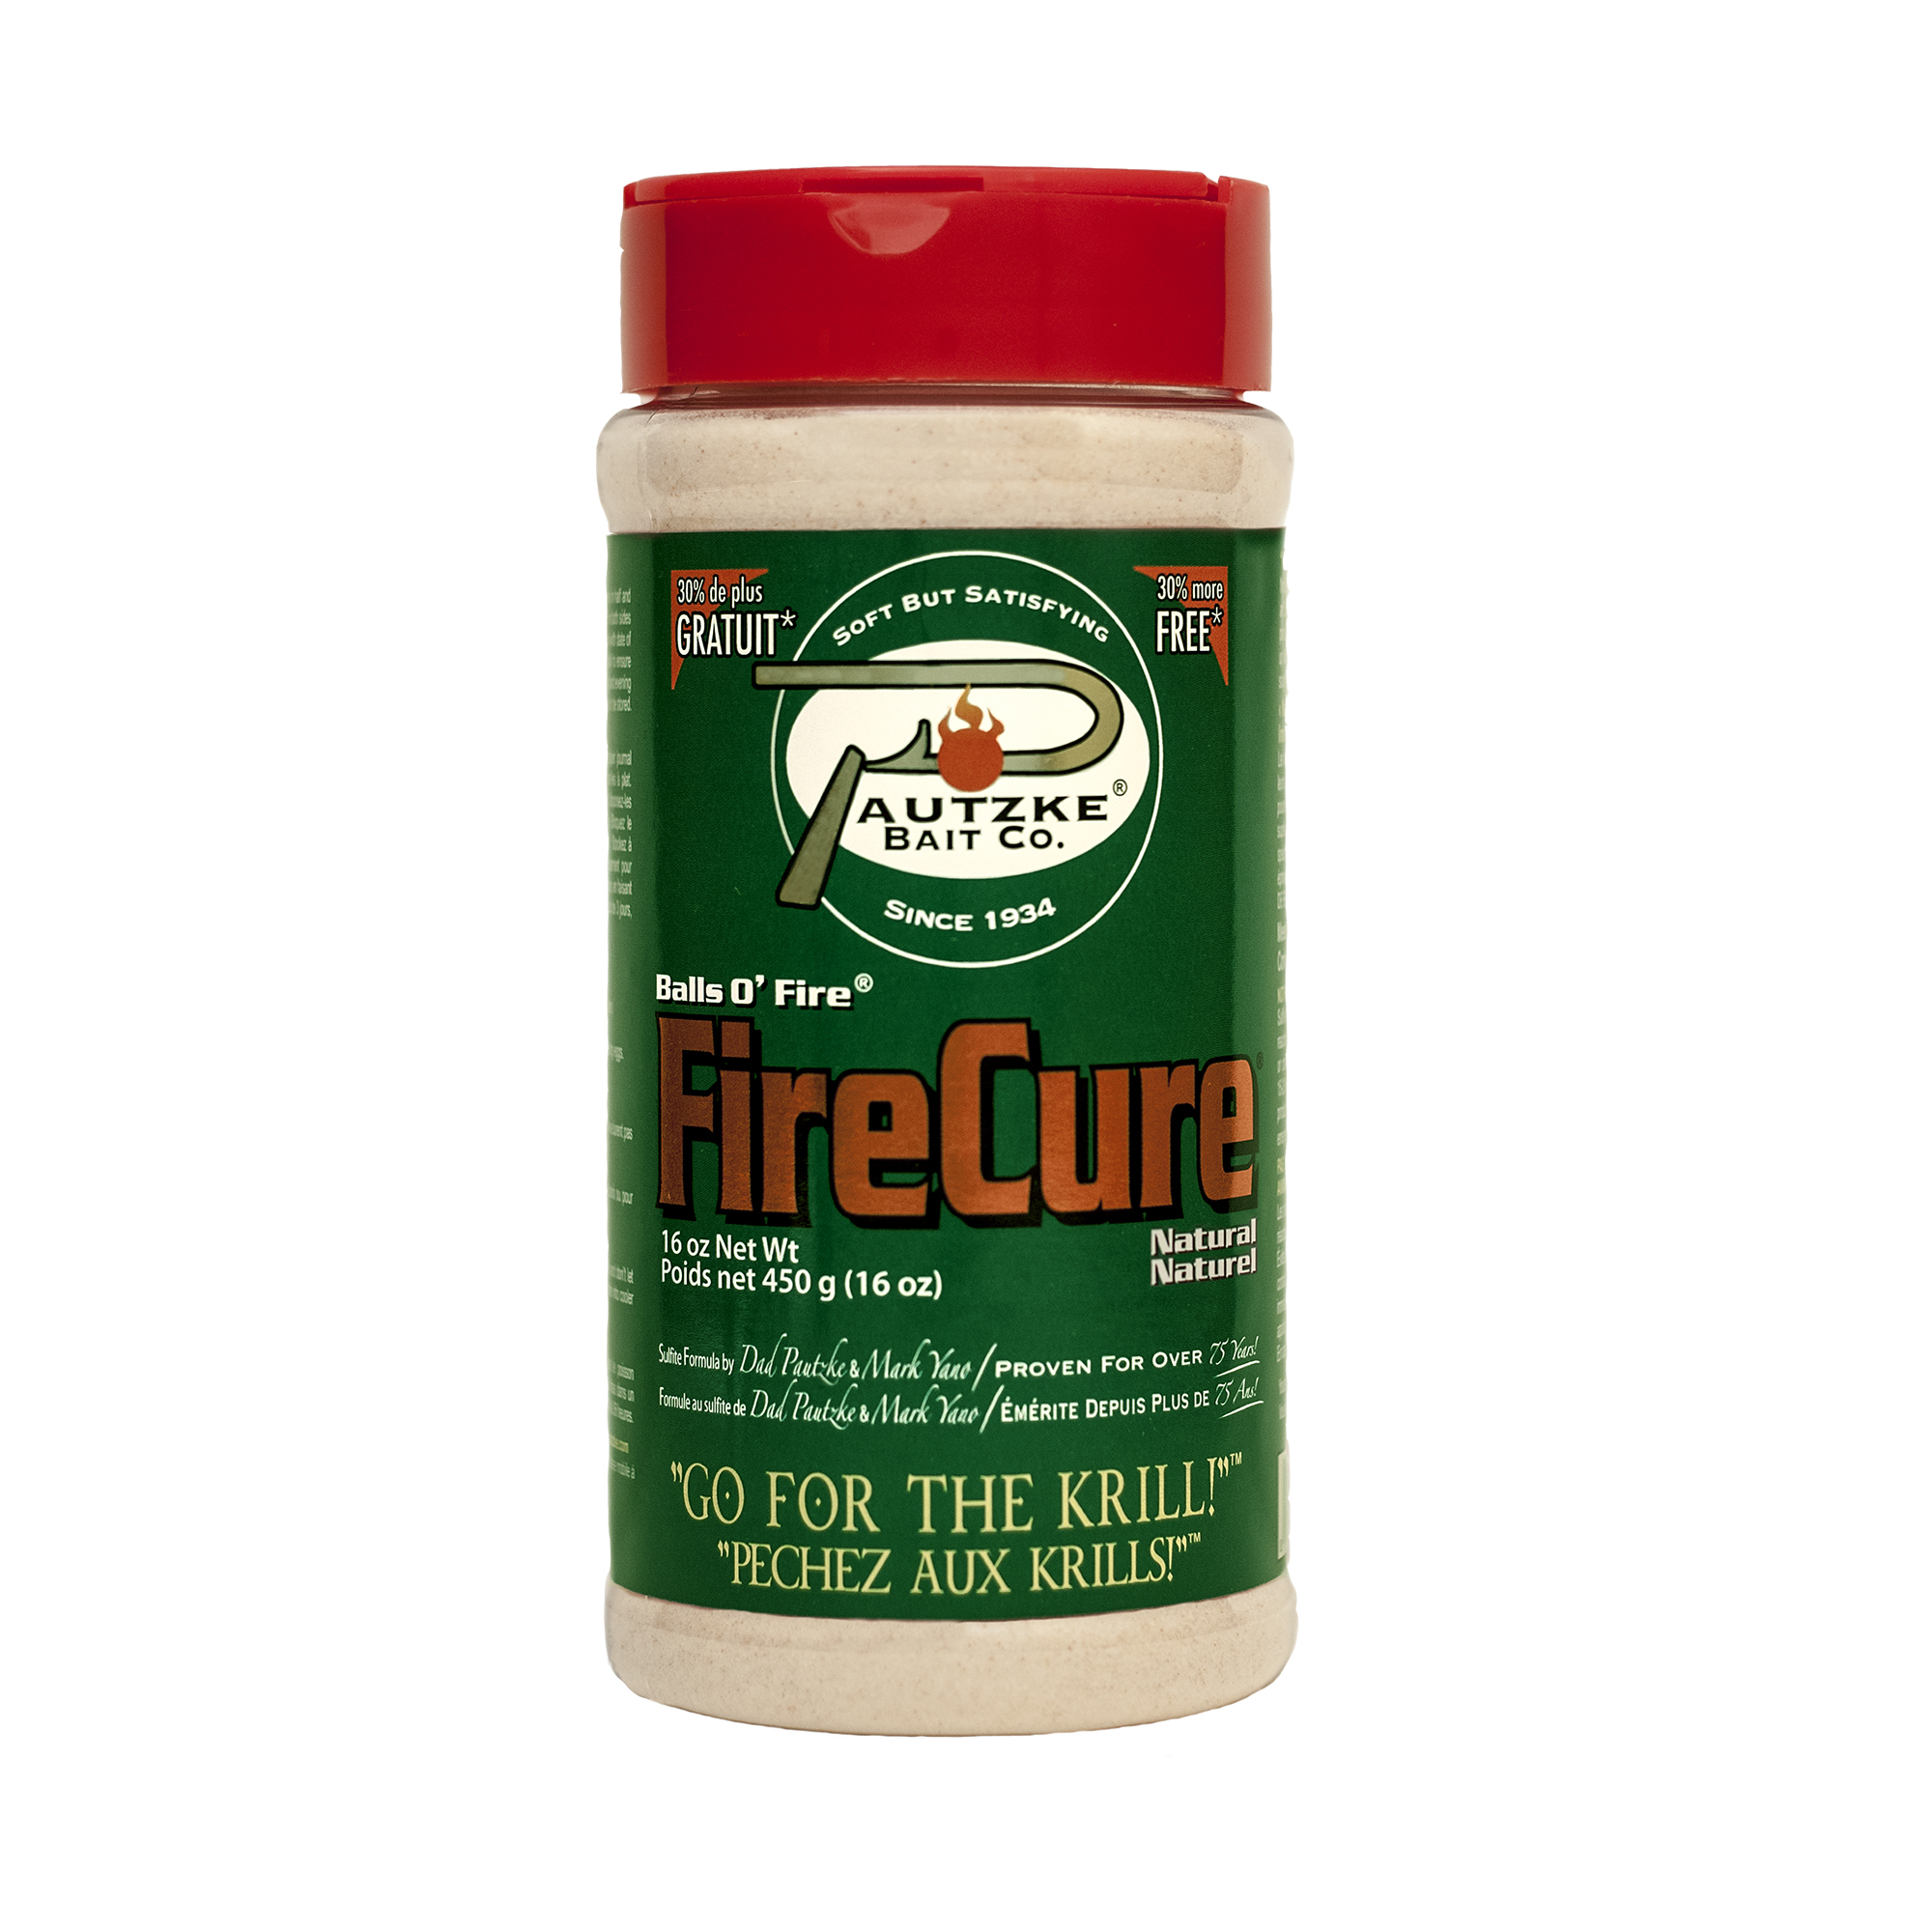 Pautzke Fire Cure - Natural 16 oz Image